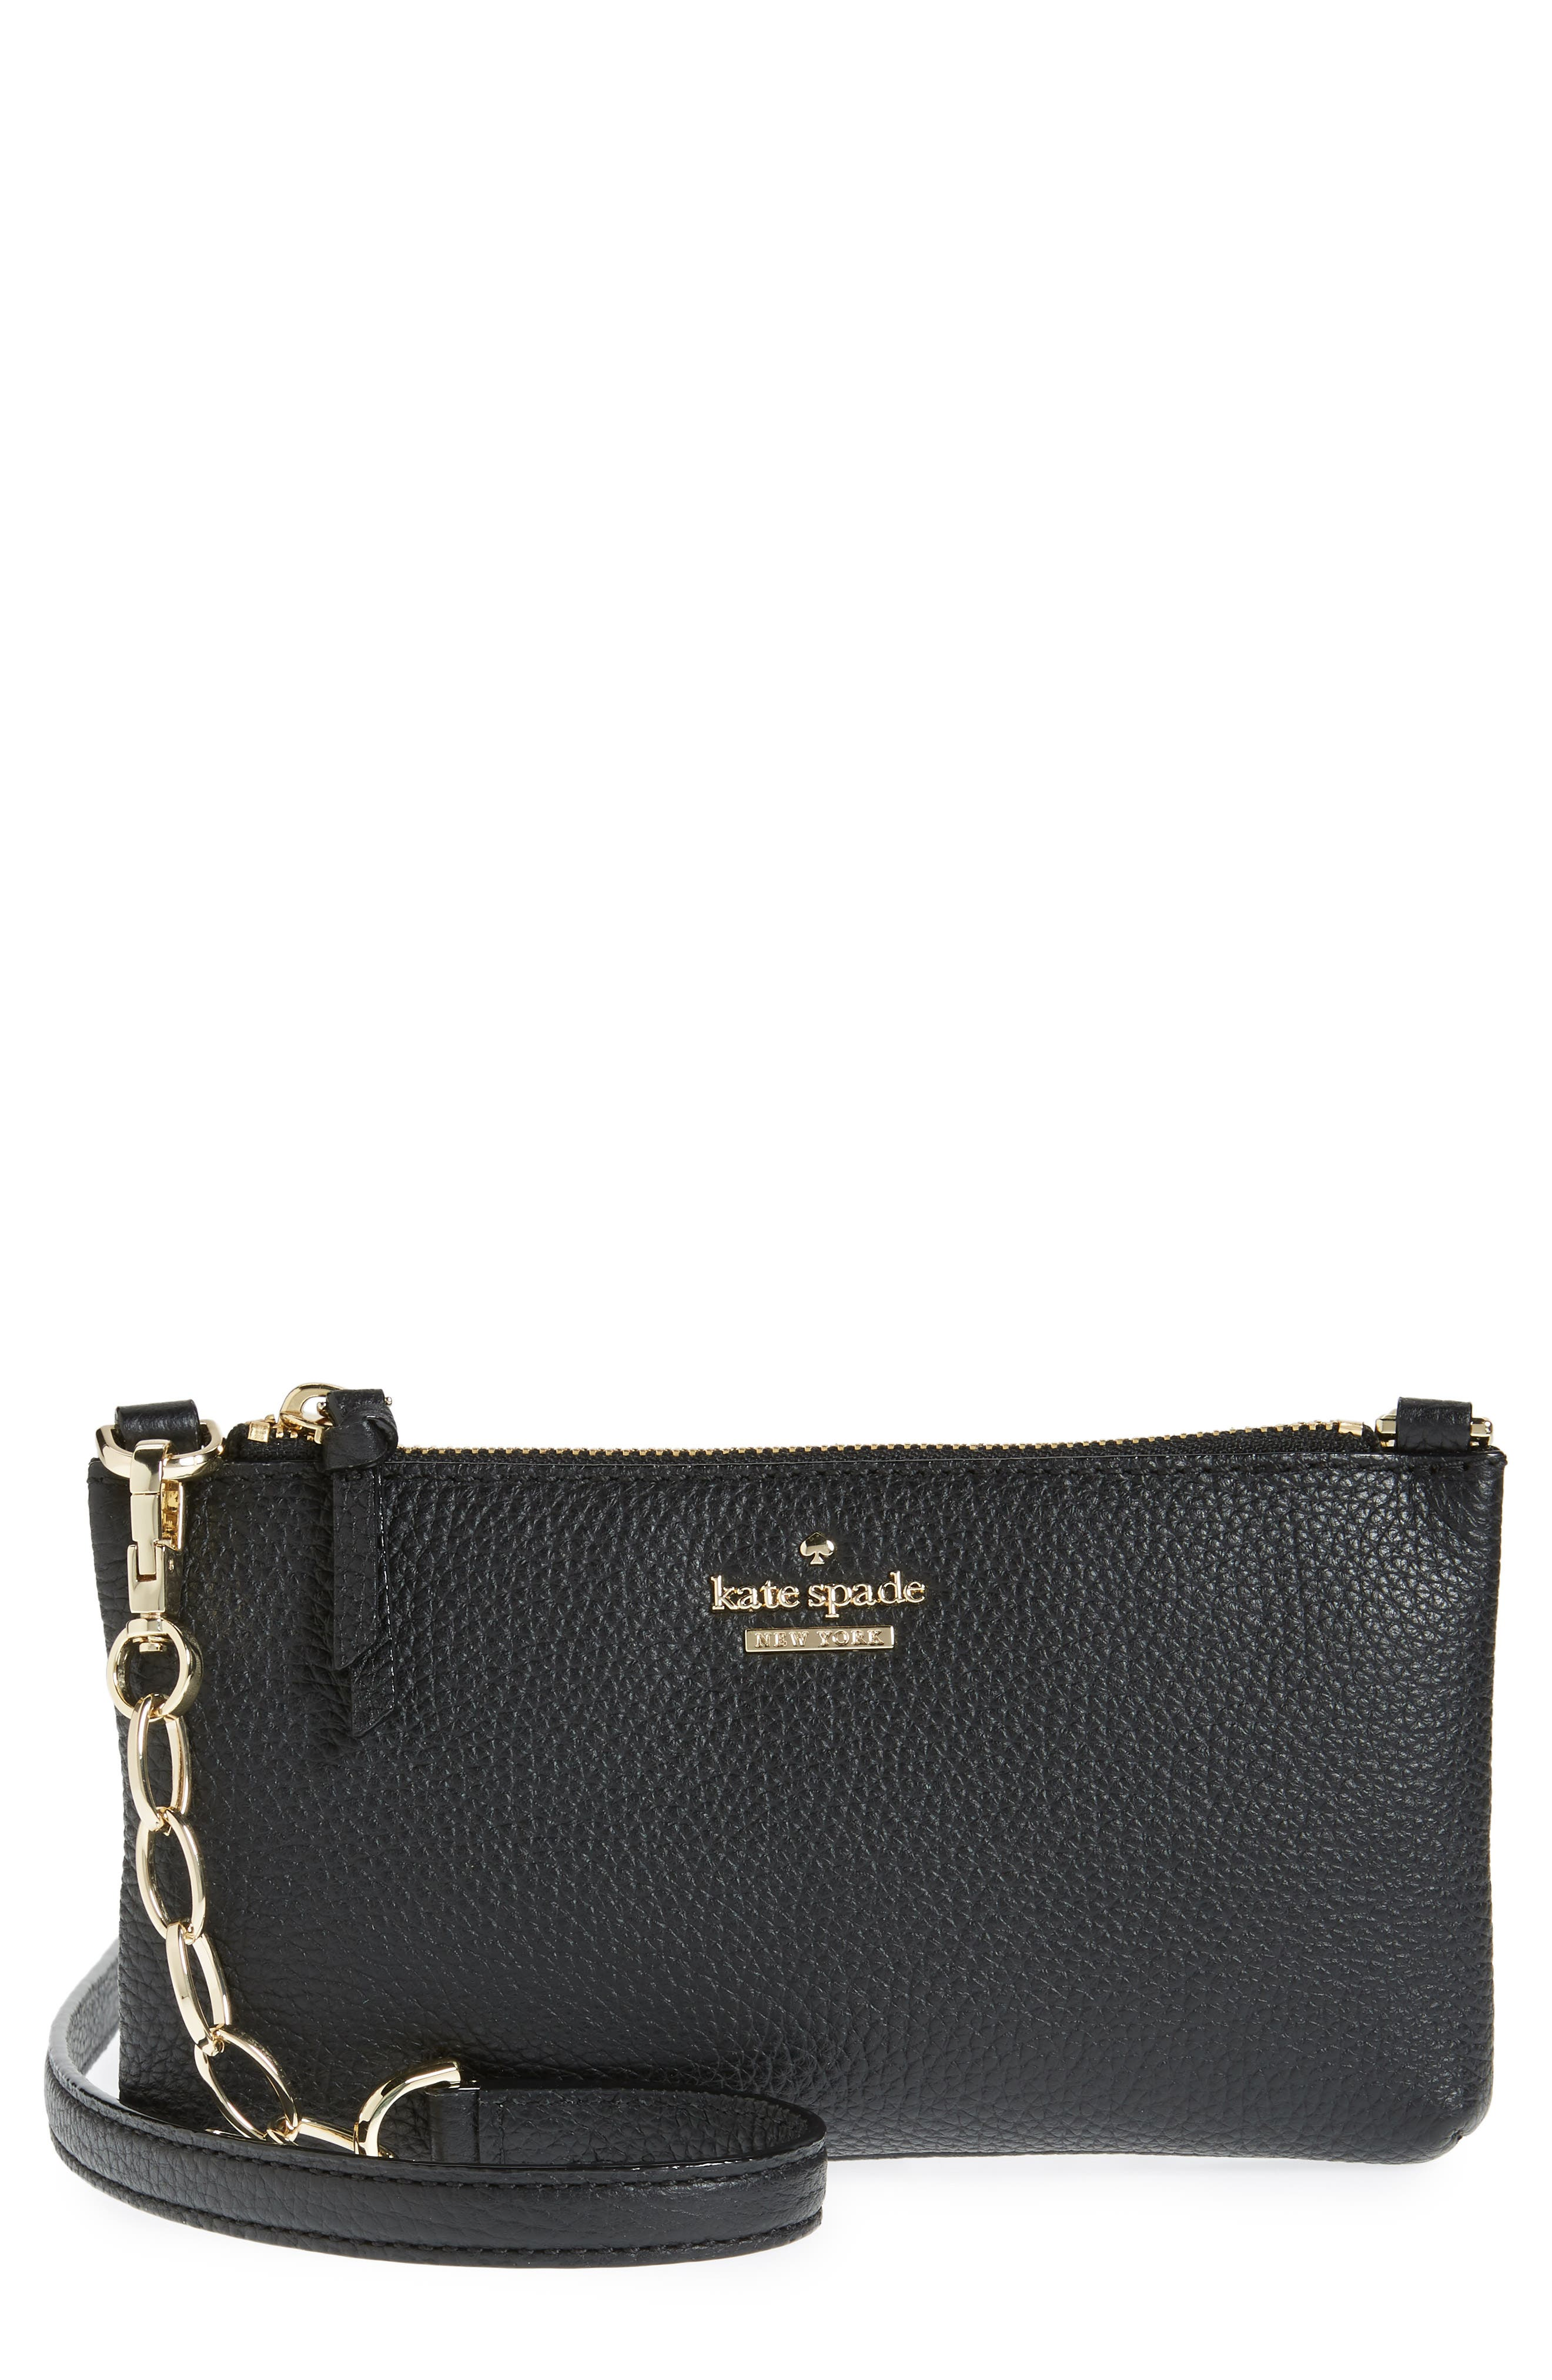 jackson street – dolores leather crossbody bag,                             Main thumbnail 1, color,                             001